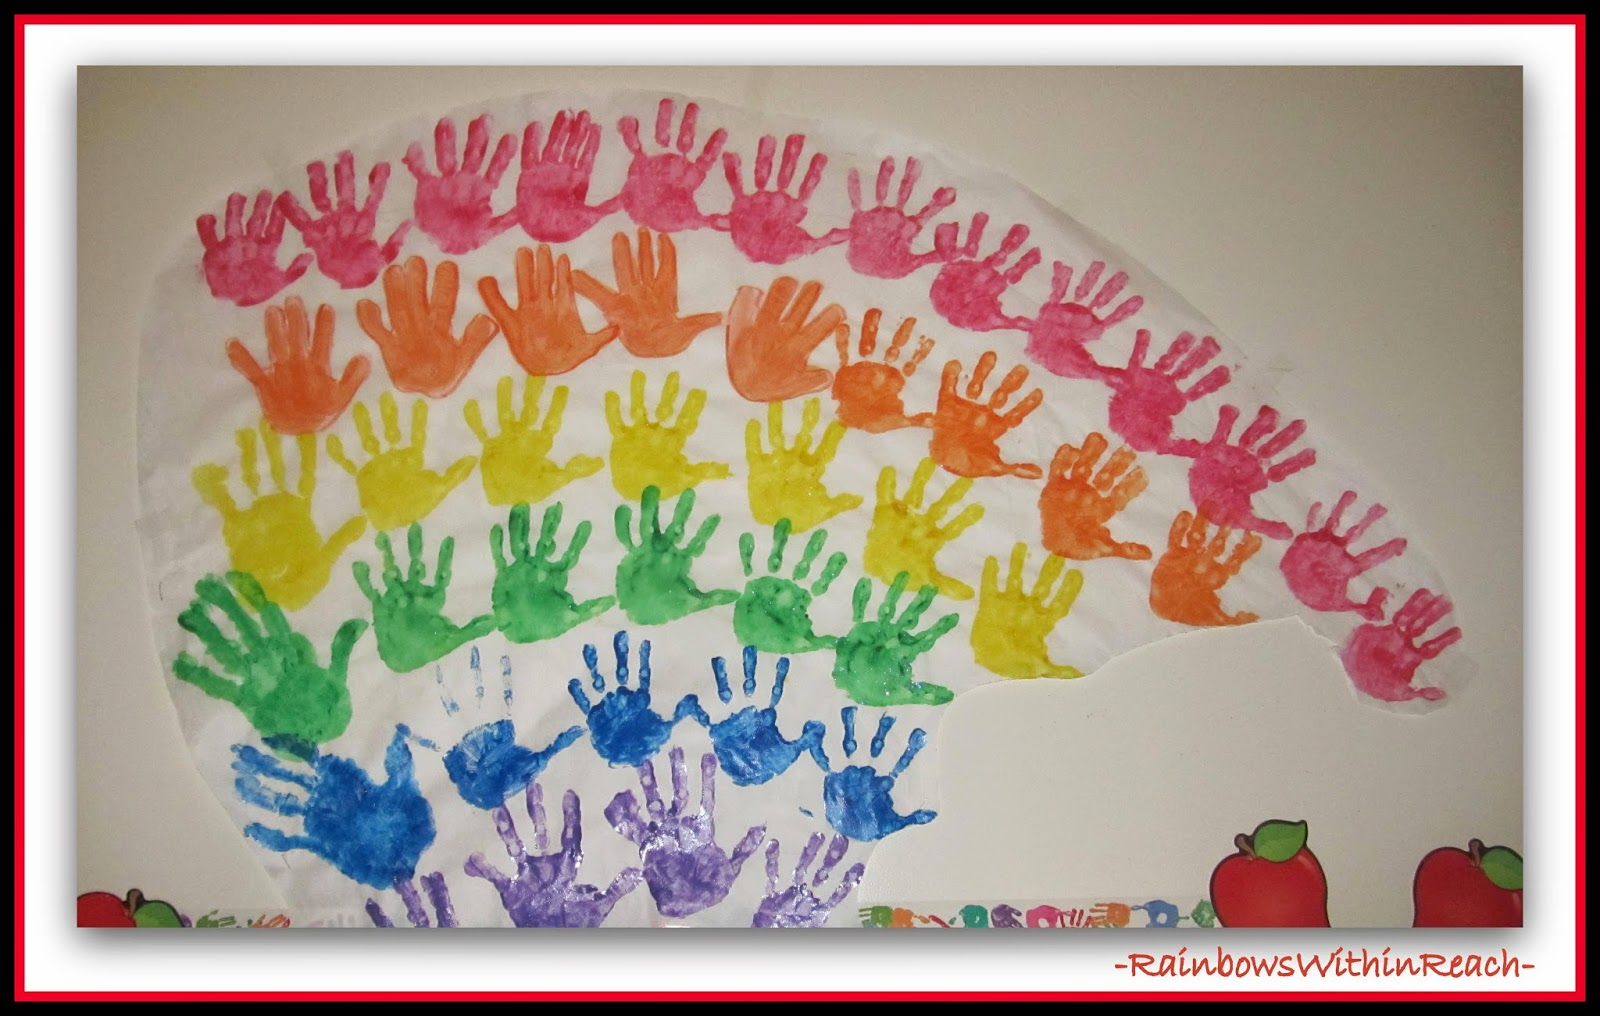 Classic Rainbow from Painted Hand Prints as Bulletin Board Cover